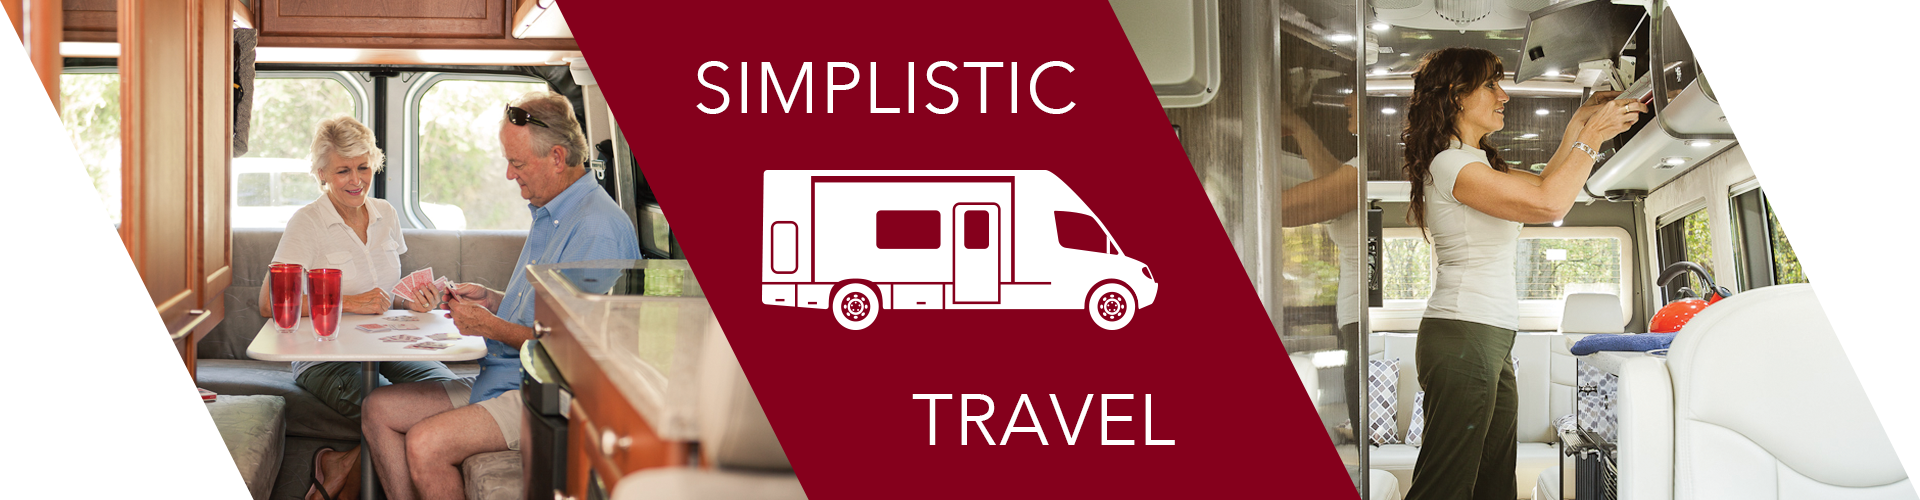 Class B Motorhome for on-the-go traveling couples